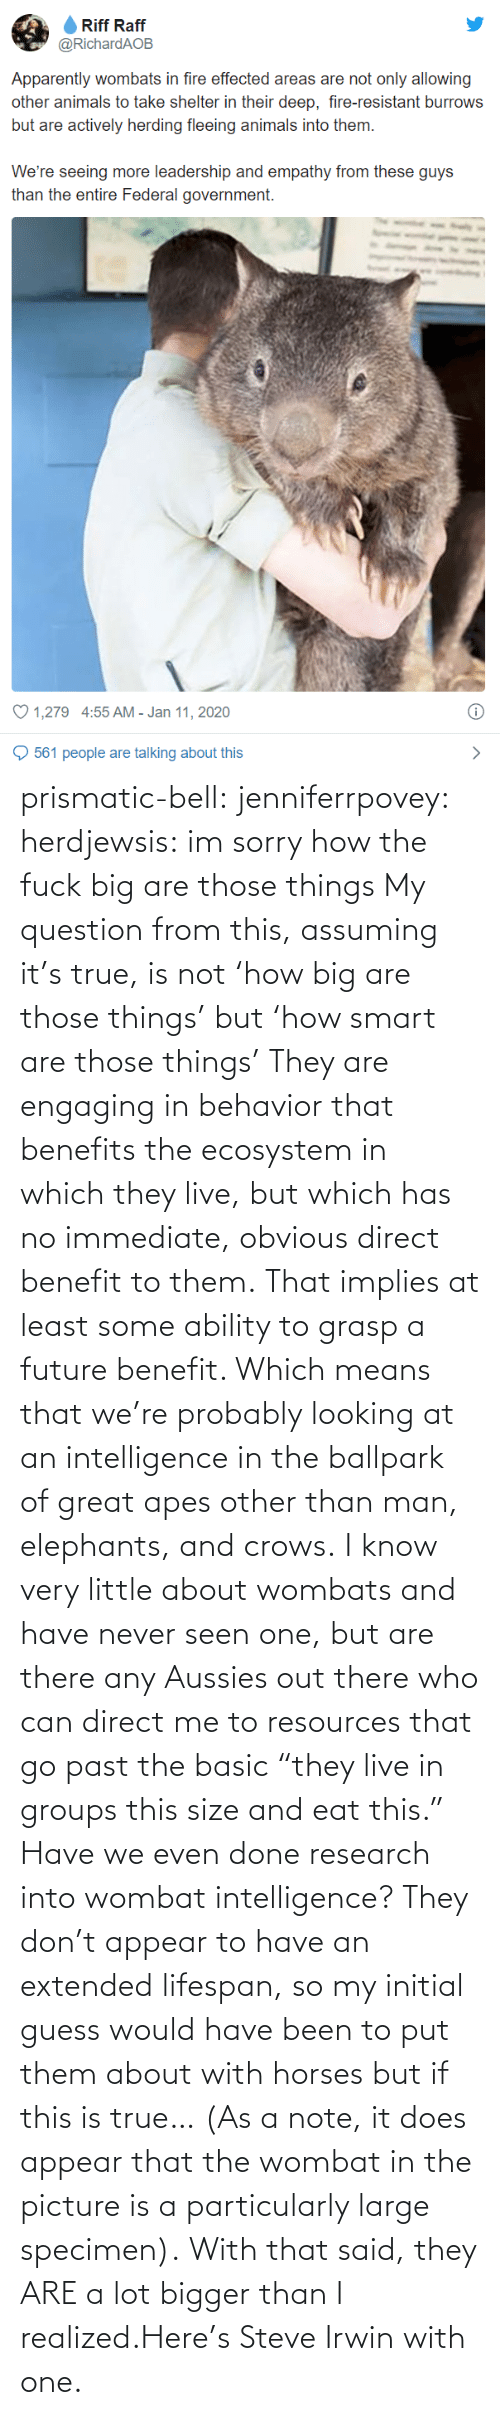 "At Least: prismatic-bell:  jenniferrpovey: herdjewsis: im sorry how the fuck big are those things My question from this, assuming it's true, is not 'how big are those things' but 'how smart are those things' They are engaging in behavior that benefits the ecosystem in which they live, but which has no immediate, obvious direct benefit to them. That implies at least some ability to grasp a future benefit. Which means that we're probably looking at an intelligence in the ballpark of great apes other than man, elephants, and crows. I know very little about wombats and have never seen one, but are there any Aussies out there who can direct me to resources that go past the basic ""they live in groups this size and eat this."" Have we even done research into wombat intelligence? They don't appear to have an extended lifespan, so my initial guess would have been to put them about with horses but if this is true… (As a note, it does appear that the wombat in the picture is a particularly large specimen).  With that said, they ARE a lot bigger than I realized.Here's Steve Irwin with one."